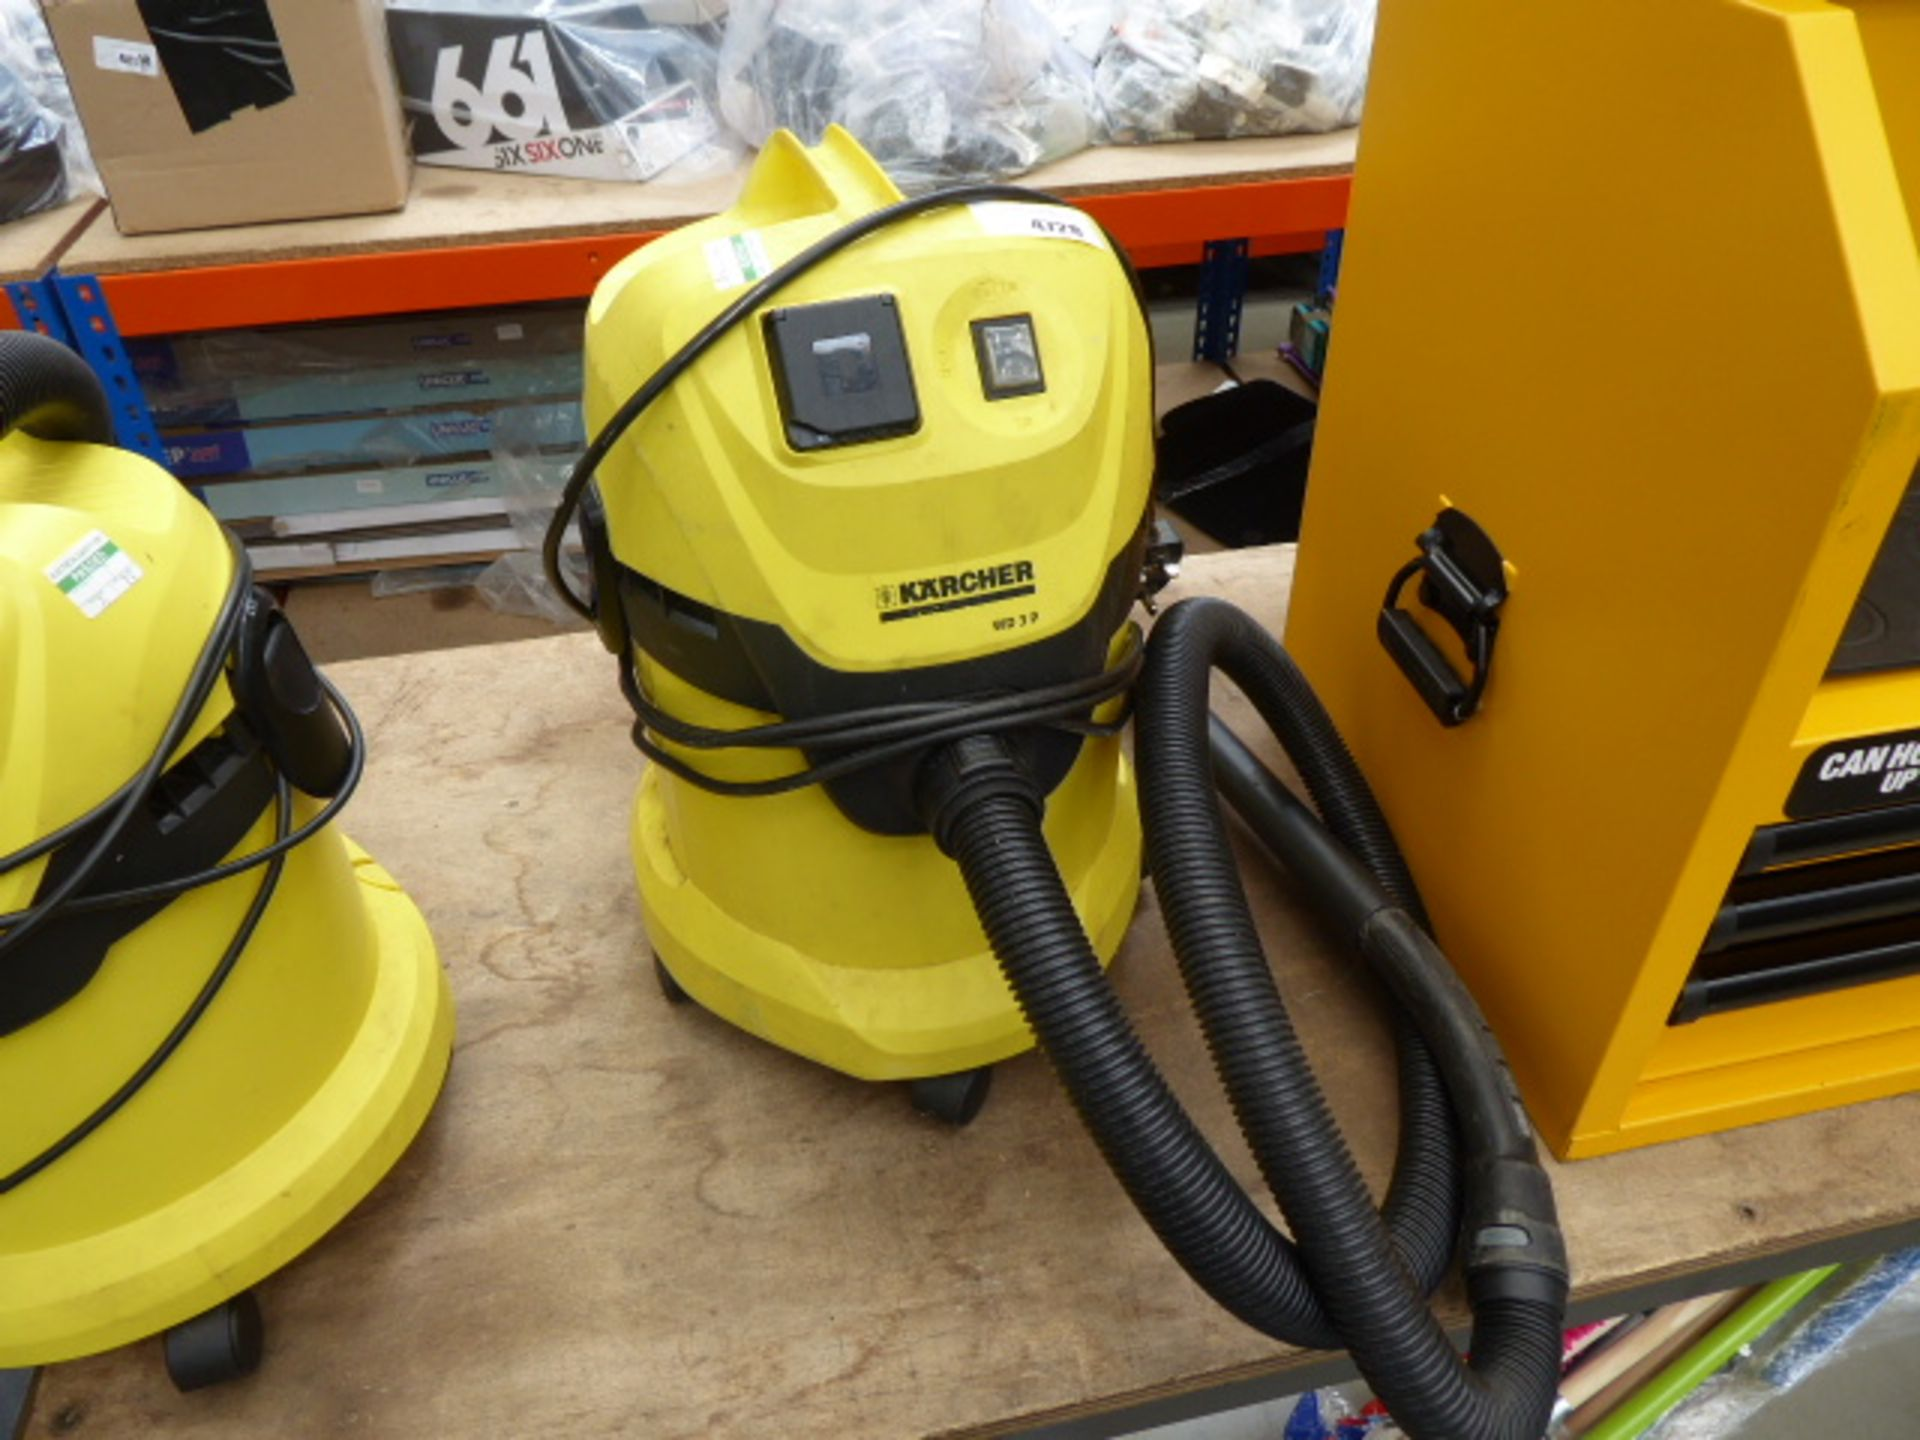 Lot 4728 - Karcher WD3P vacuum cleaner with hose and pipe